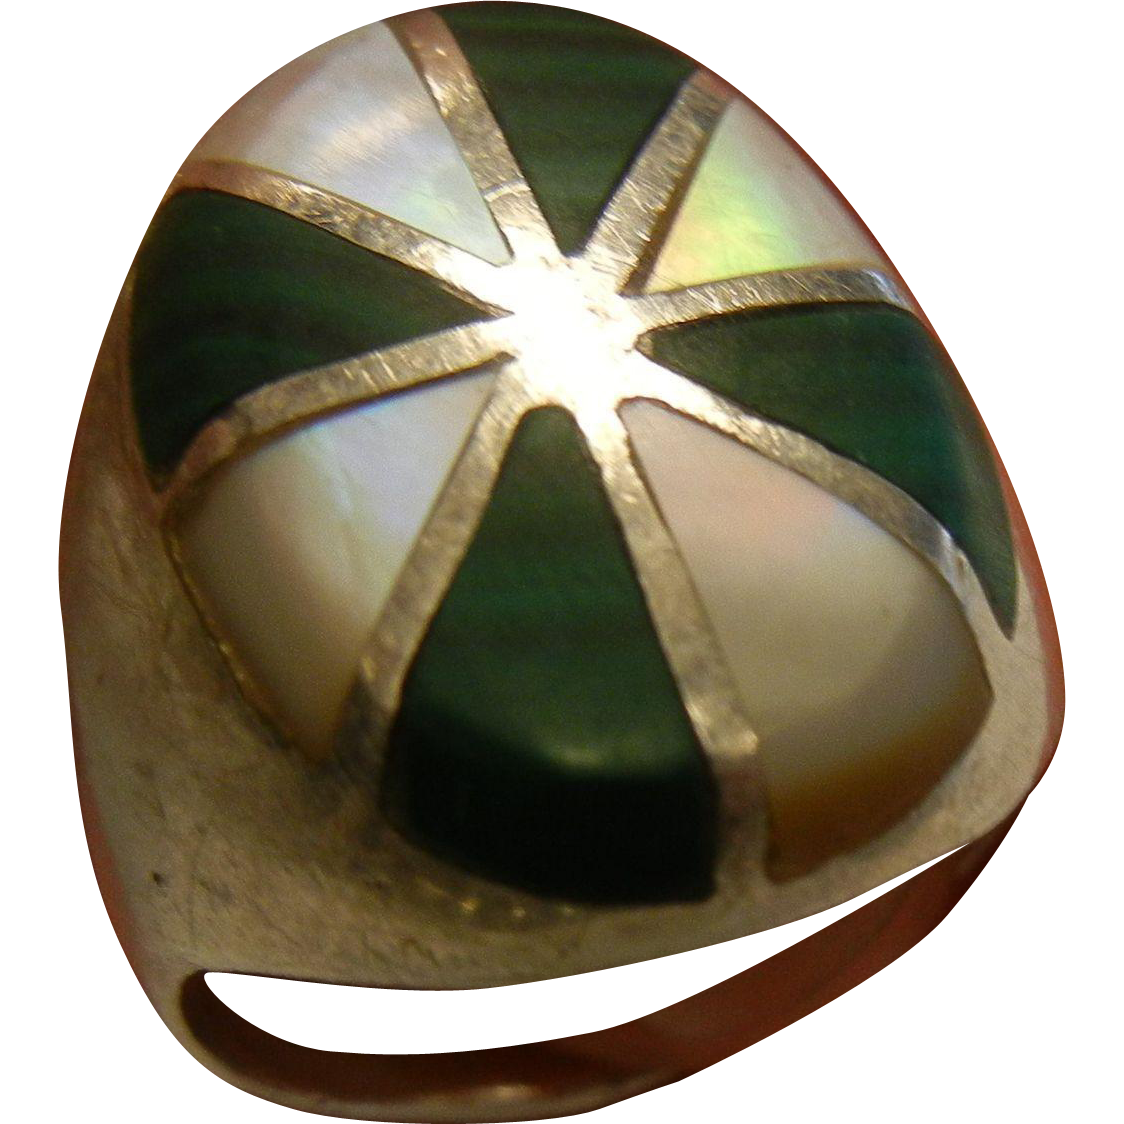 Unique Radial Natural Mother of Pearl & Malachite Inlaid Sterling Silver Ring - Size: 11